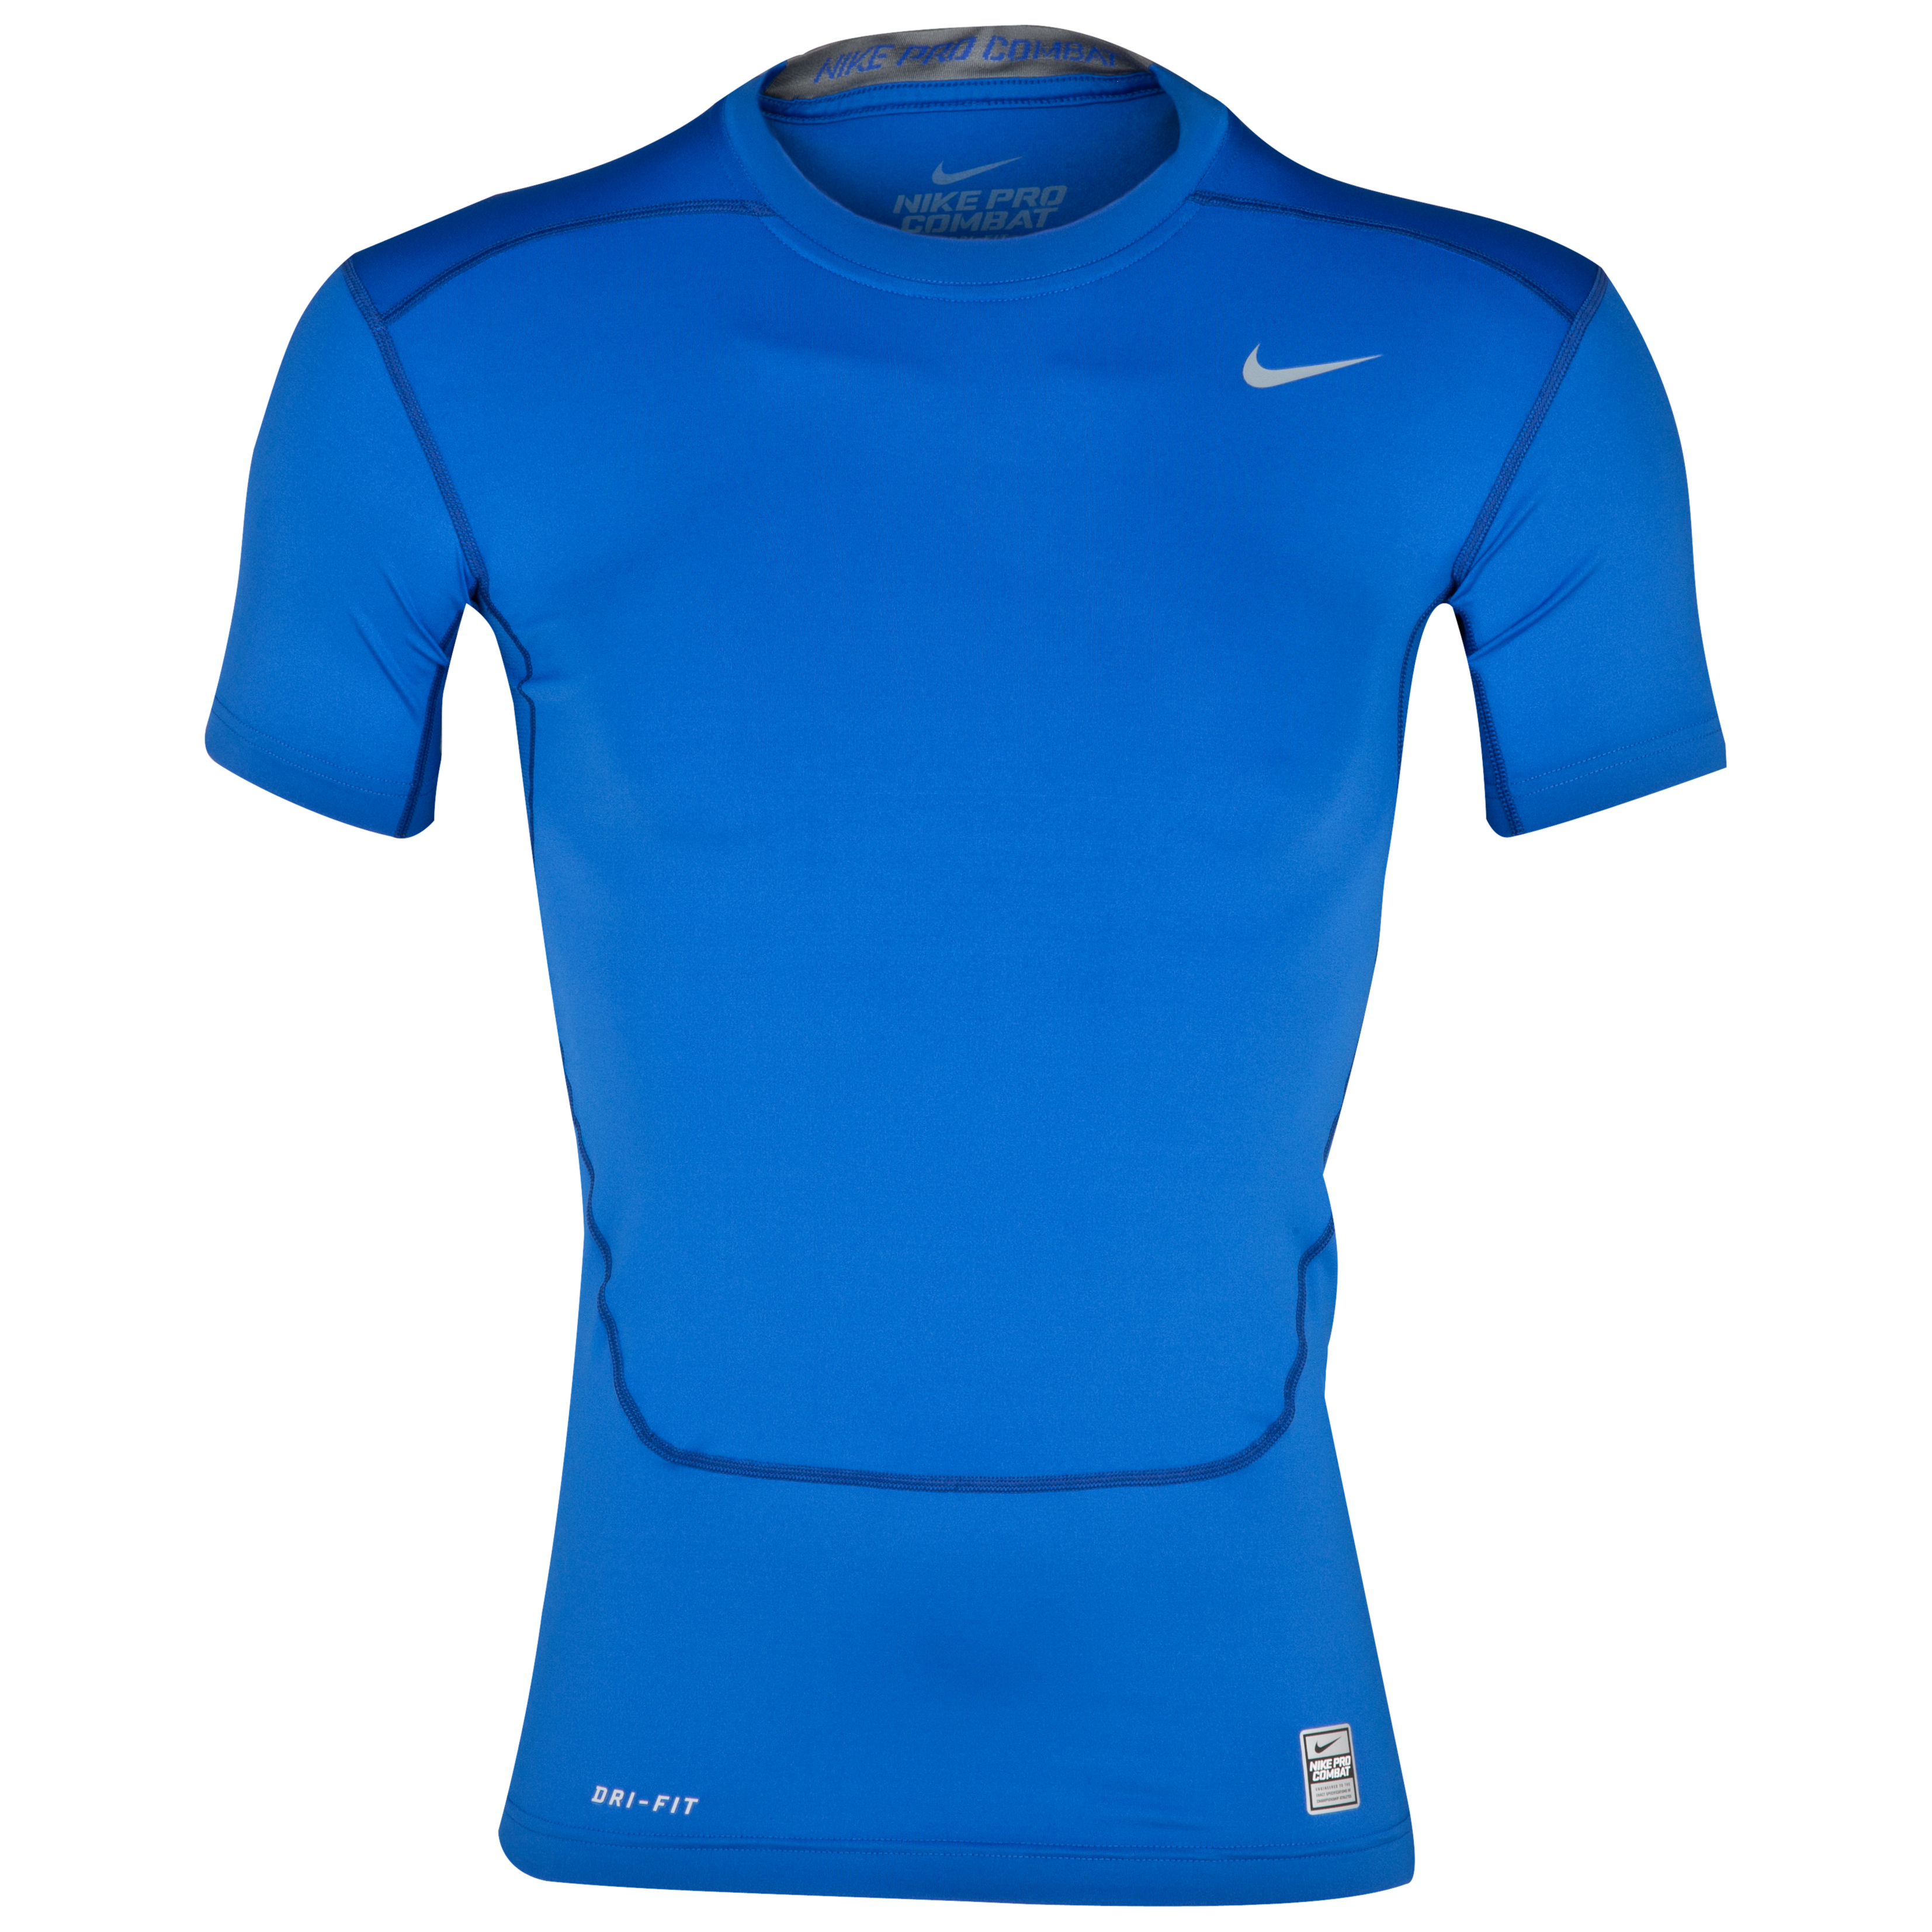 Nike Pro Combat Core Base Layer Top Blue